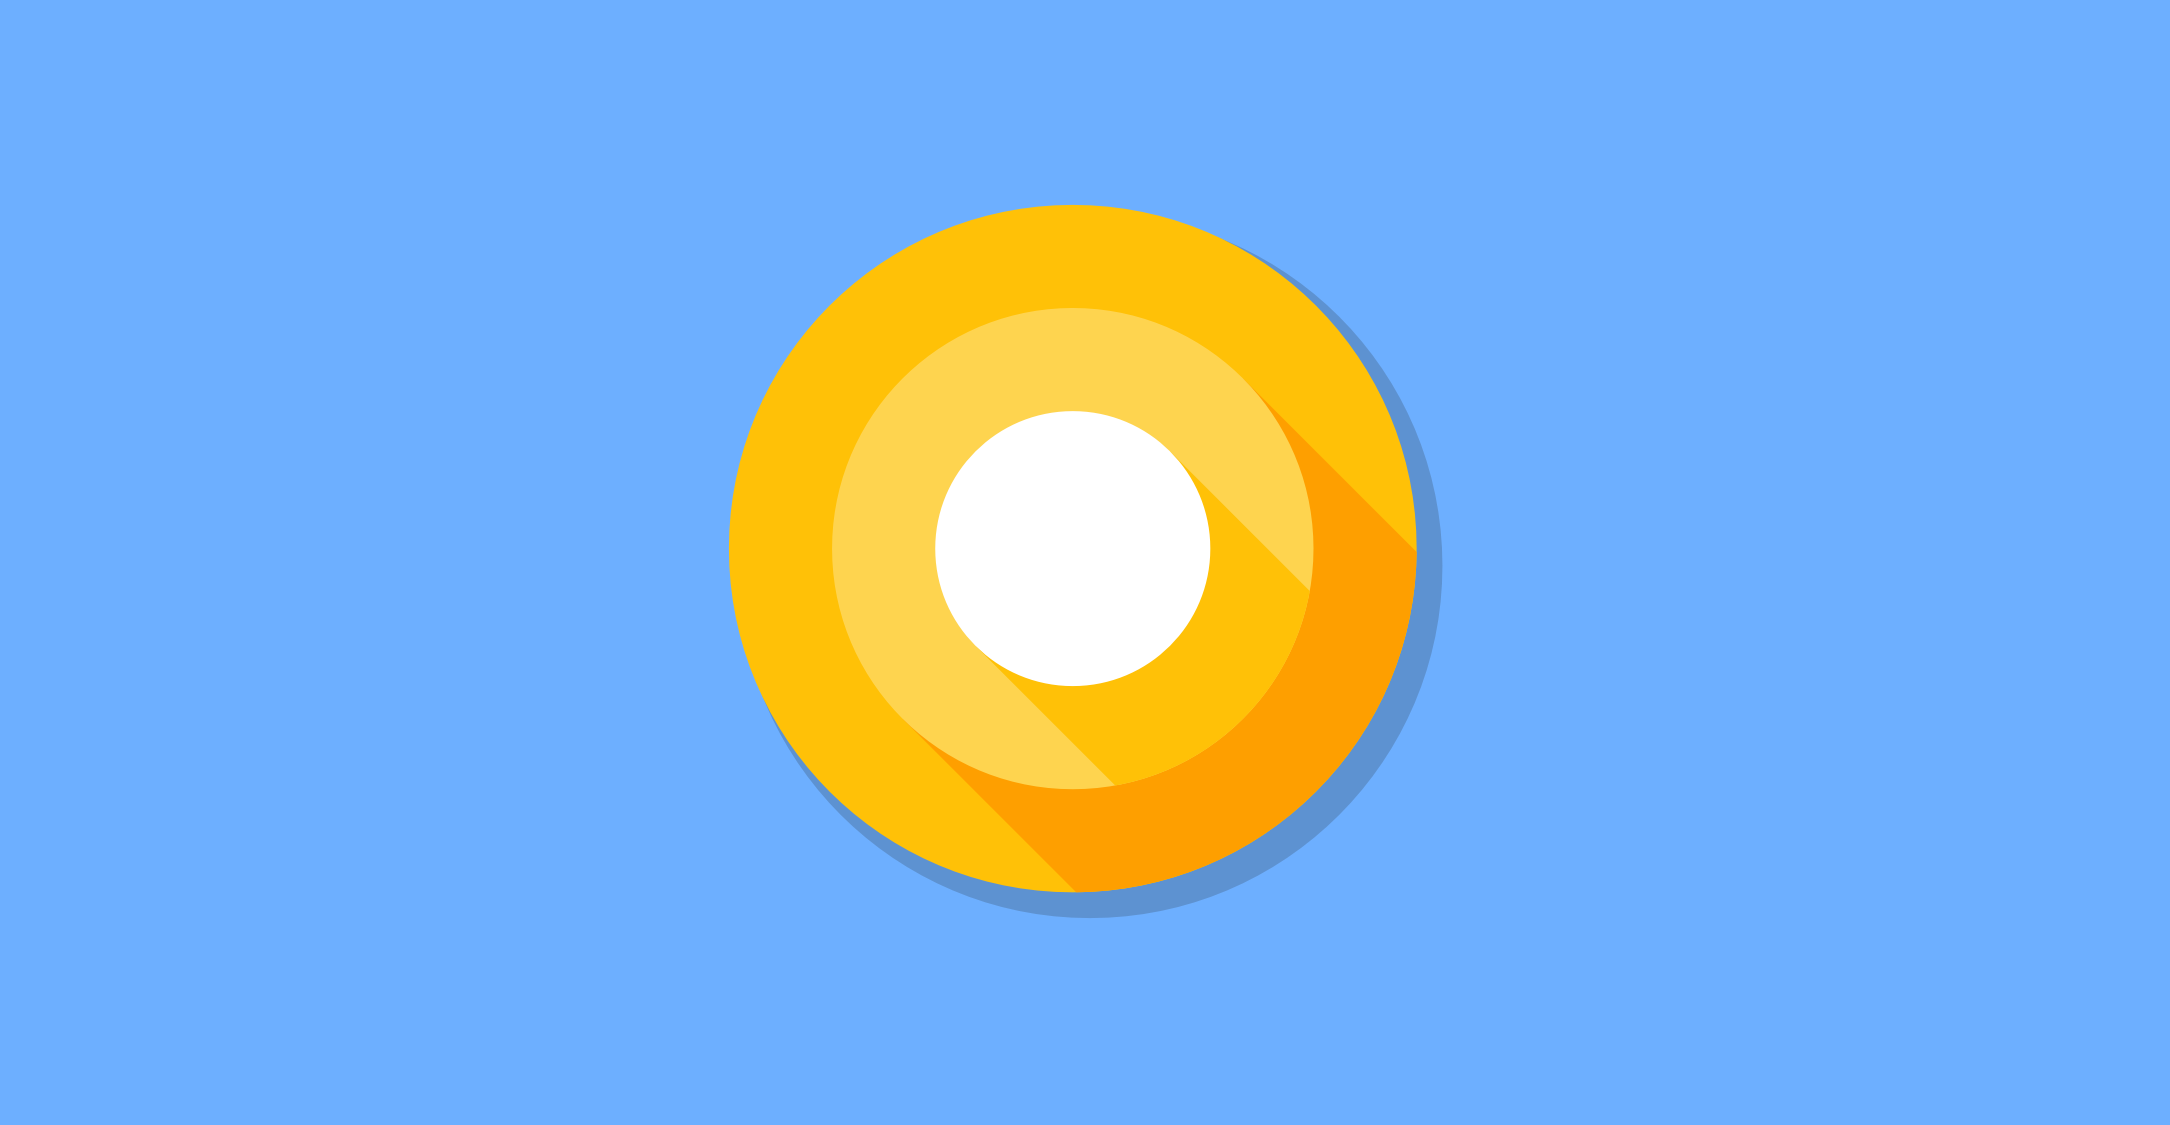 Exploring Android O: Notification Channels - Exploring